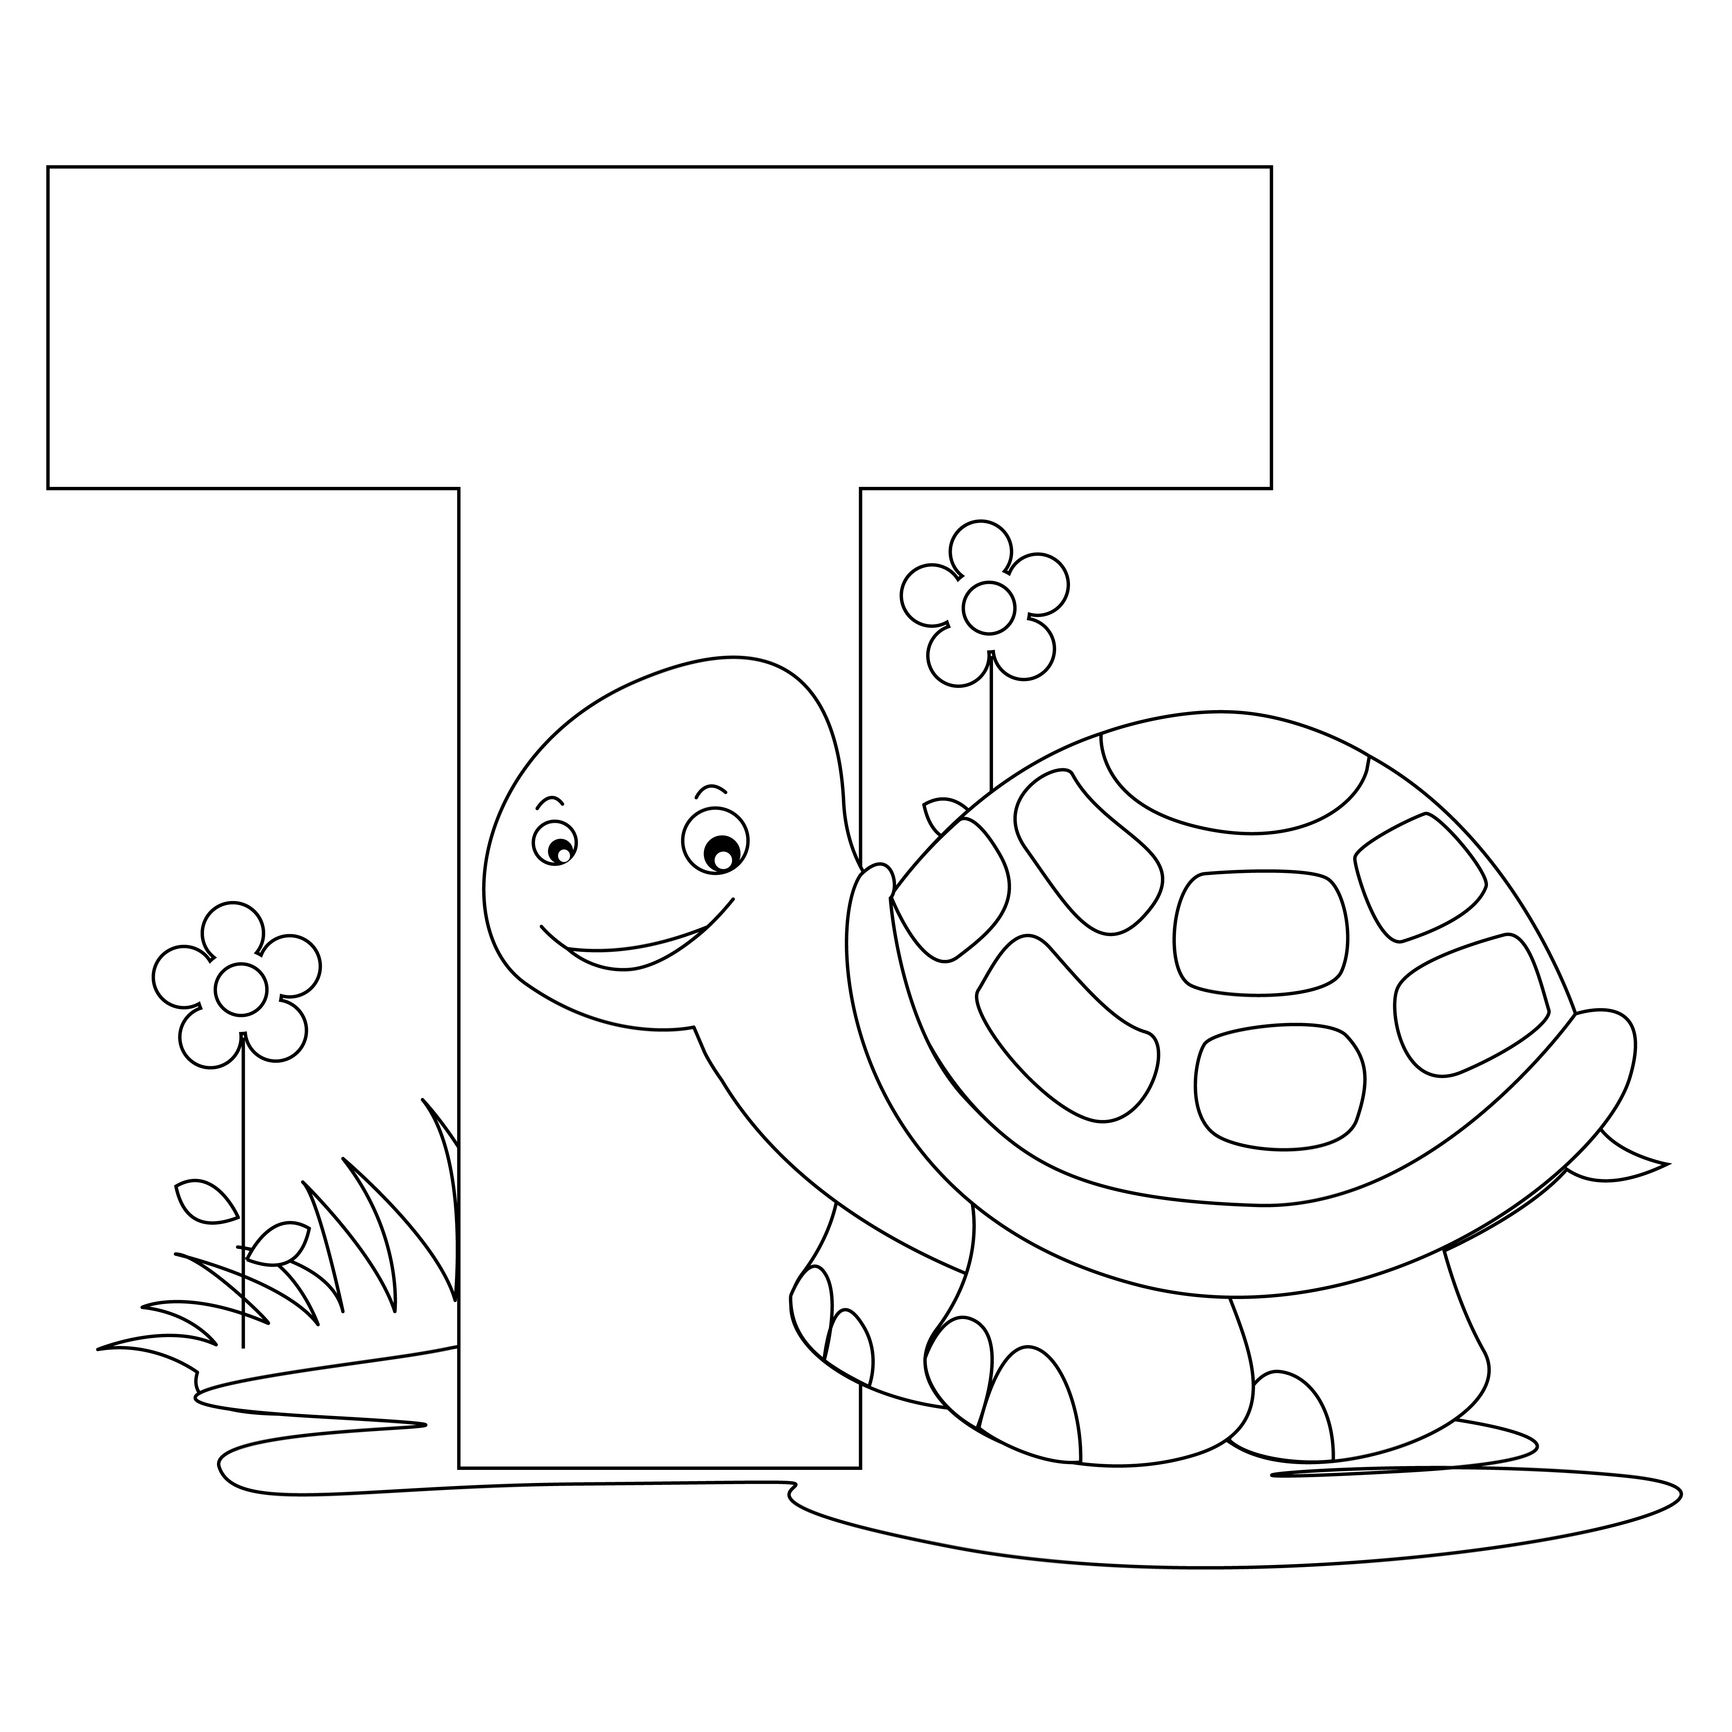 Worksheet Letter Activity Sheets 10 best images about alphabet on pinterest coloring letter n and colouring pages